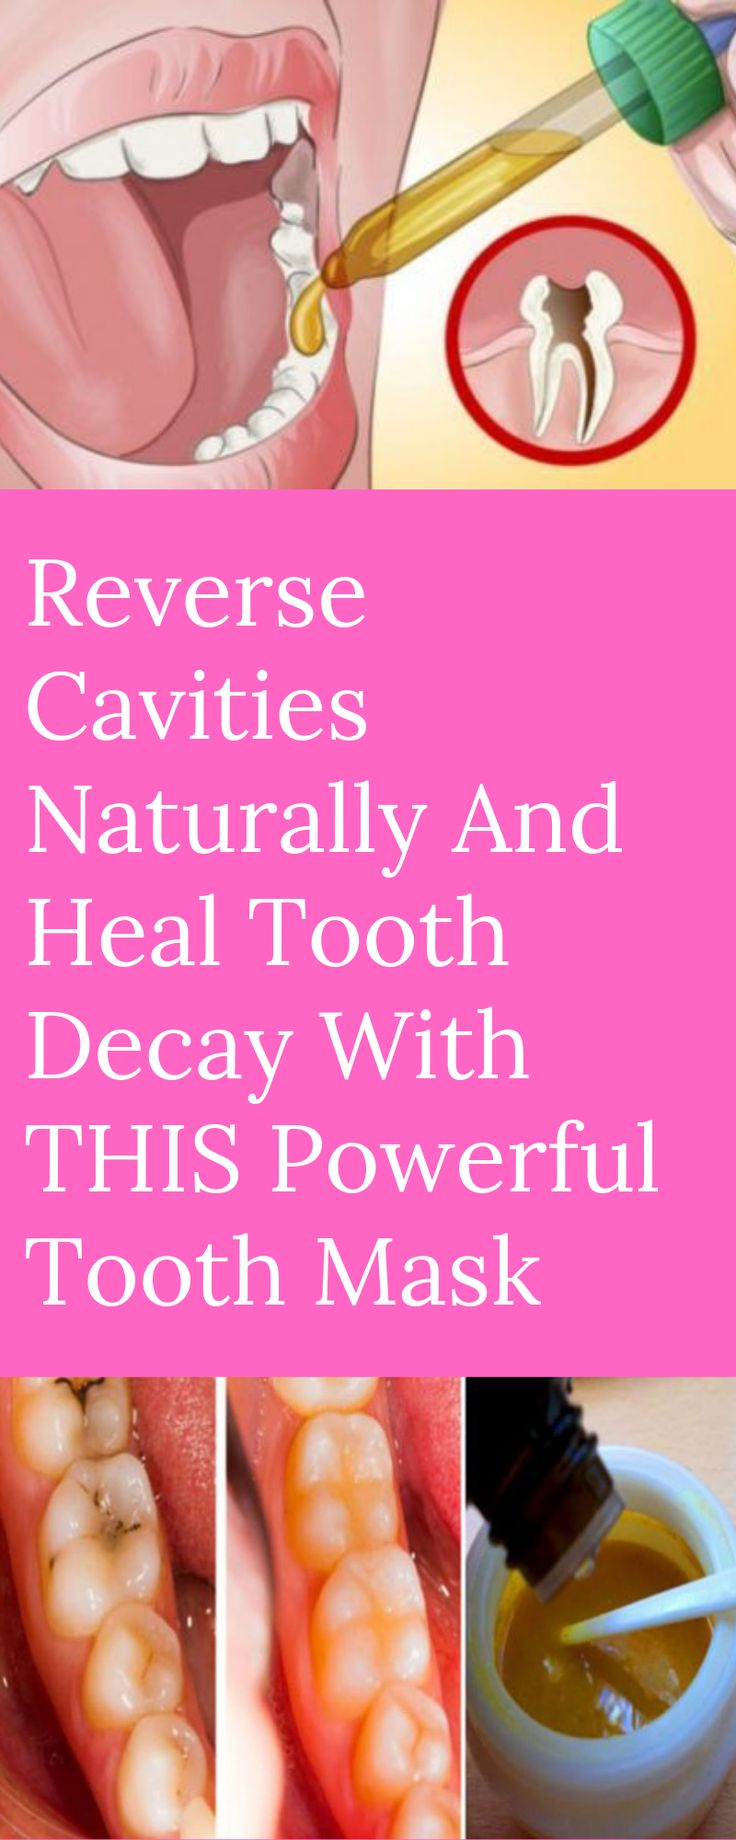 Reverse Cavities Naturally And Heal Tooth Decay With THIS